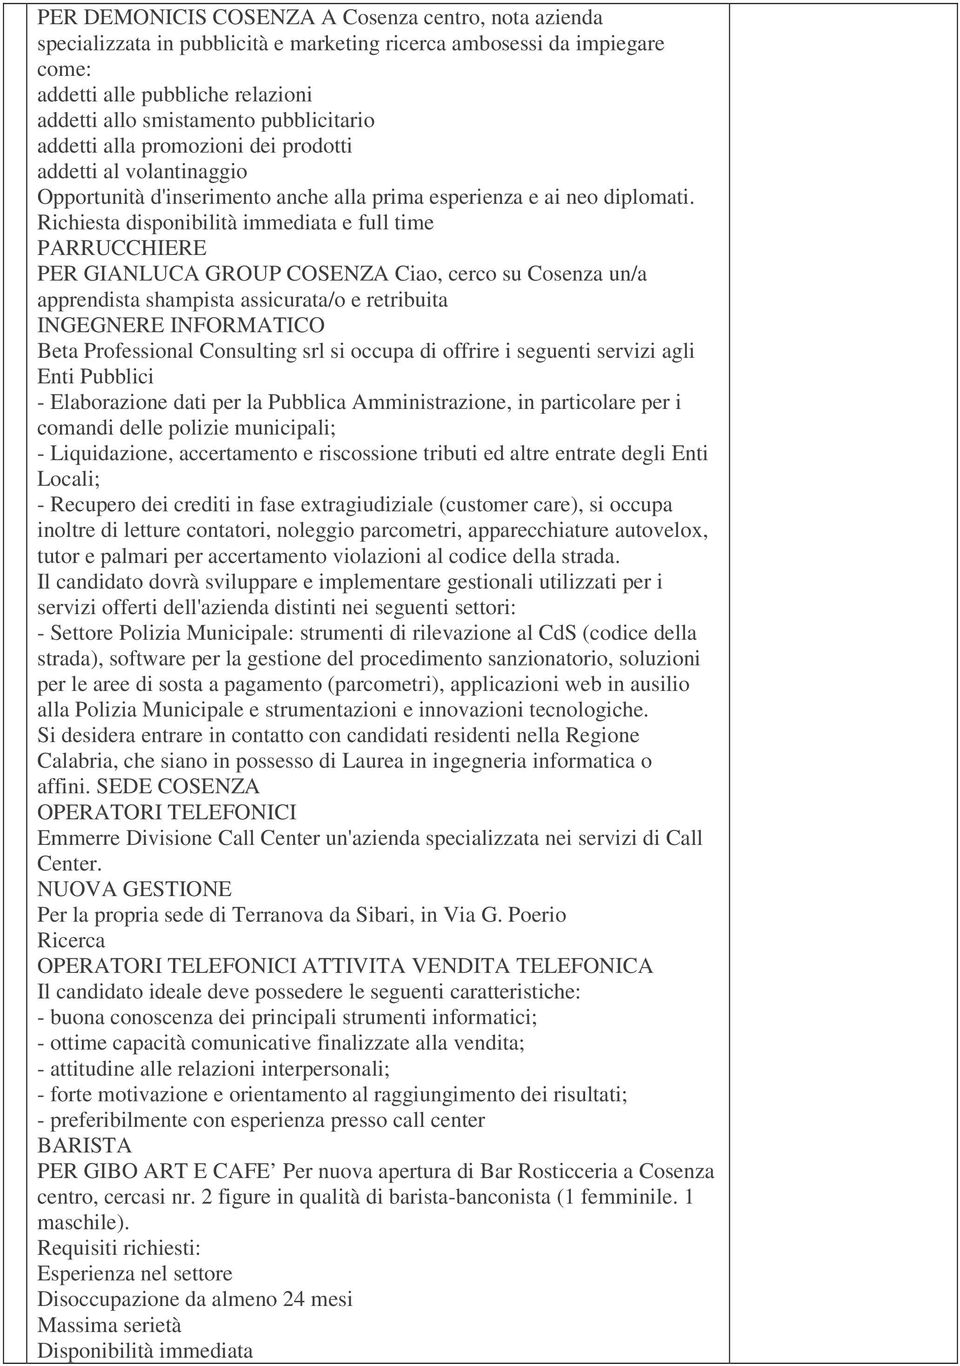 Richiesta disponibilità immediata e full time PARRUCCHIERE PER GIANLUCA GROUP COSENZA Ciao, cerco su Cosenza un/a apprendista shampista assicurata/o e retribuita INGEGNERE INFORMATICO Beta